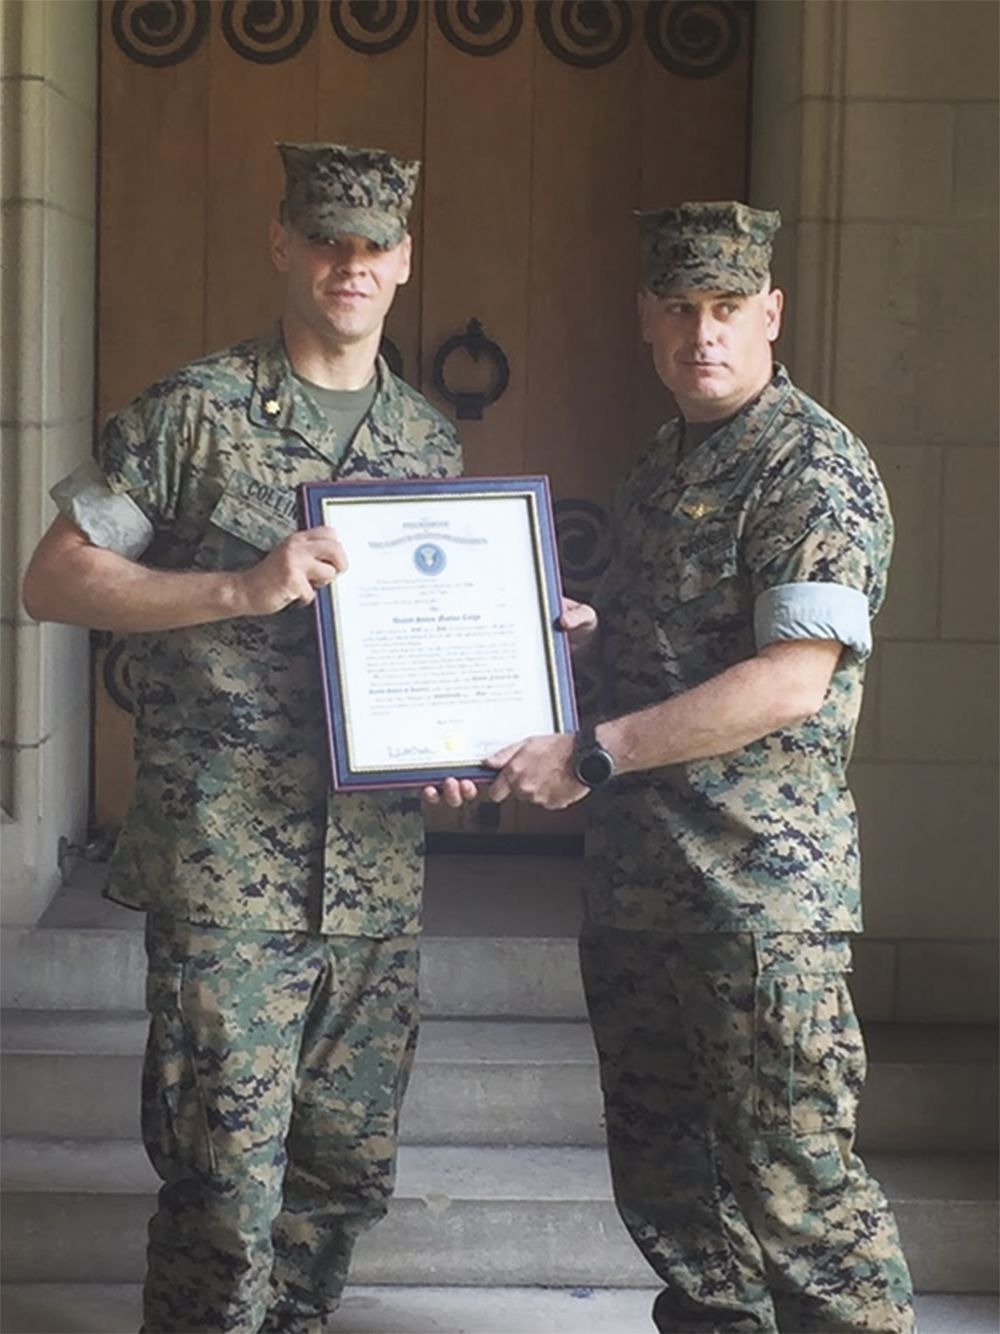 Collins receives promotion in U.S. Marine Corp